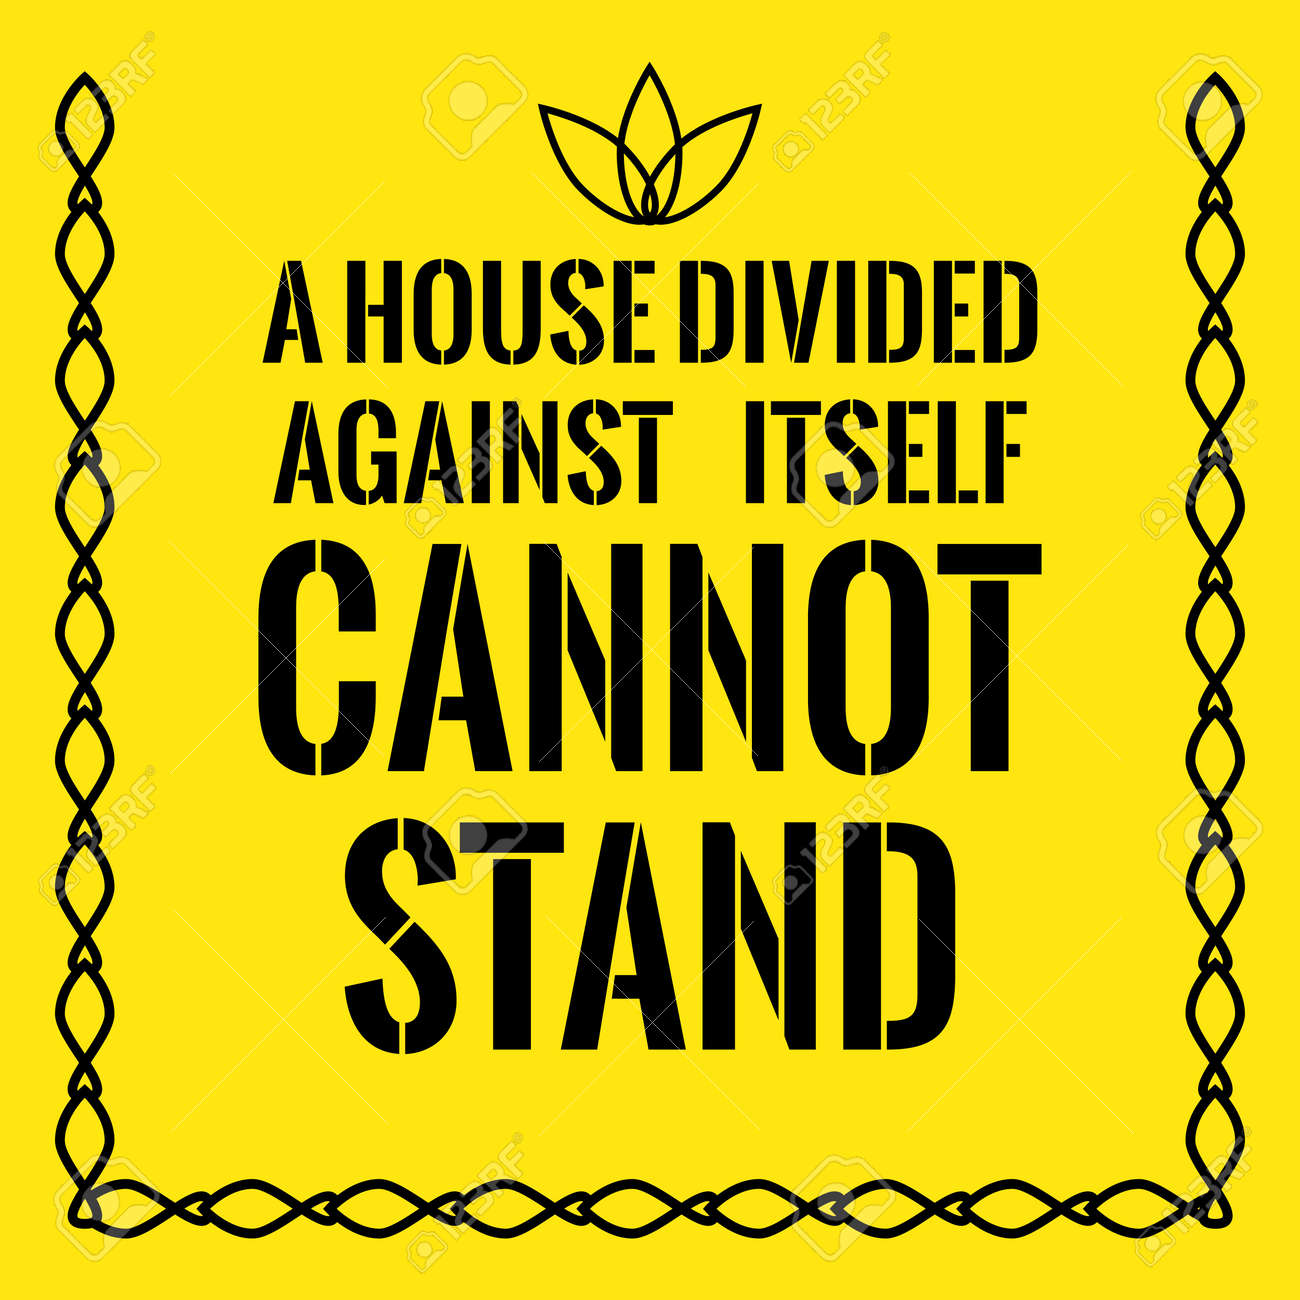 A House Divided Against Itself Cannot Stand. On Yellow Background. Stock